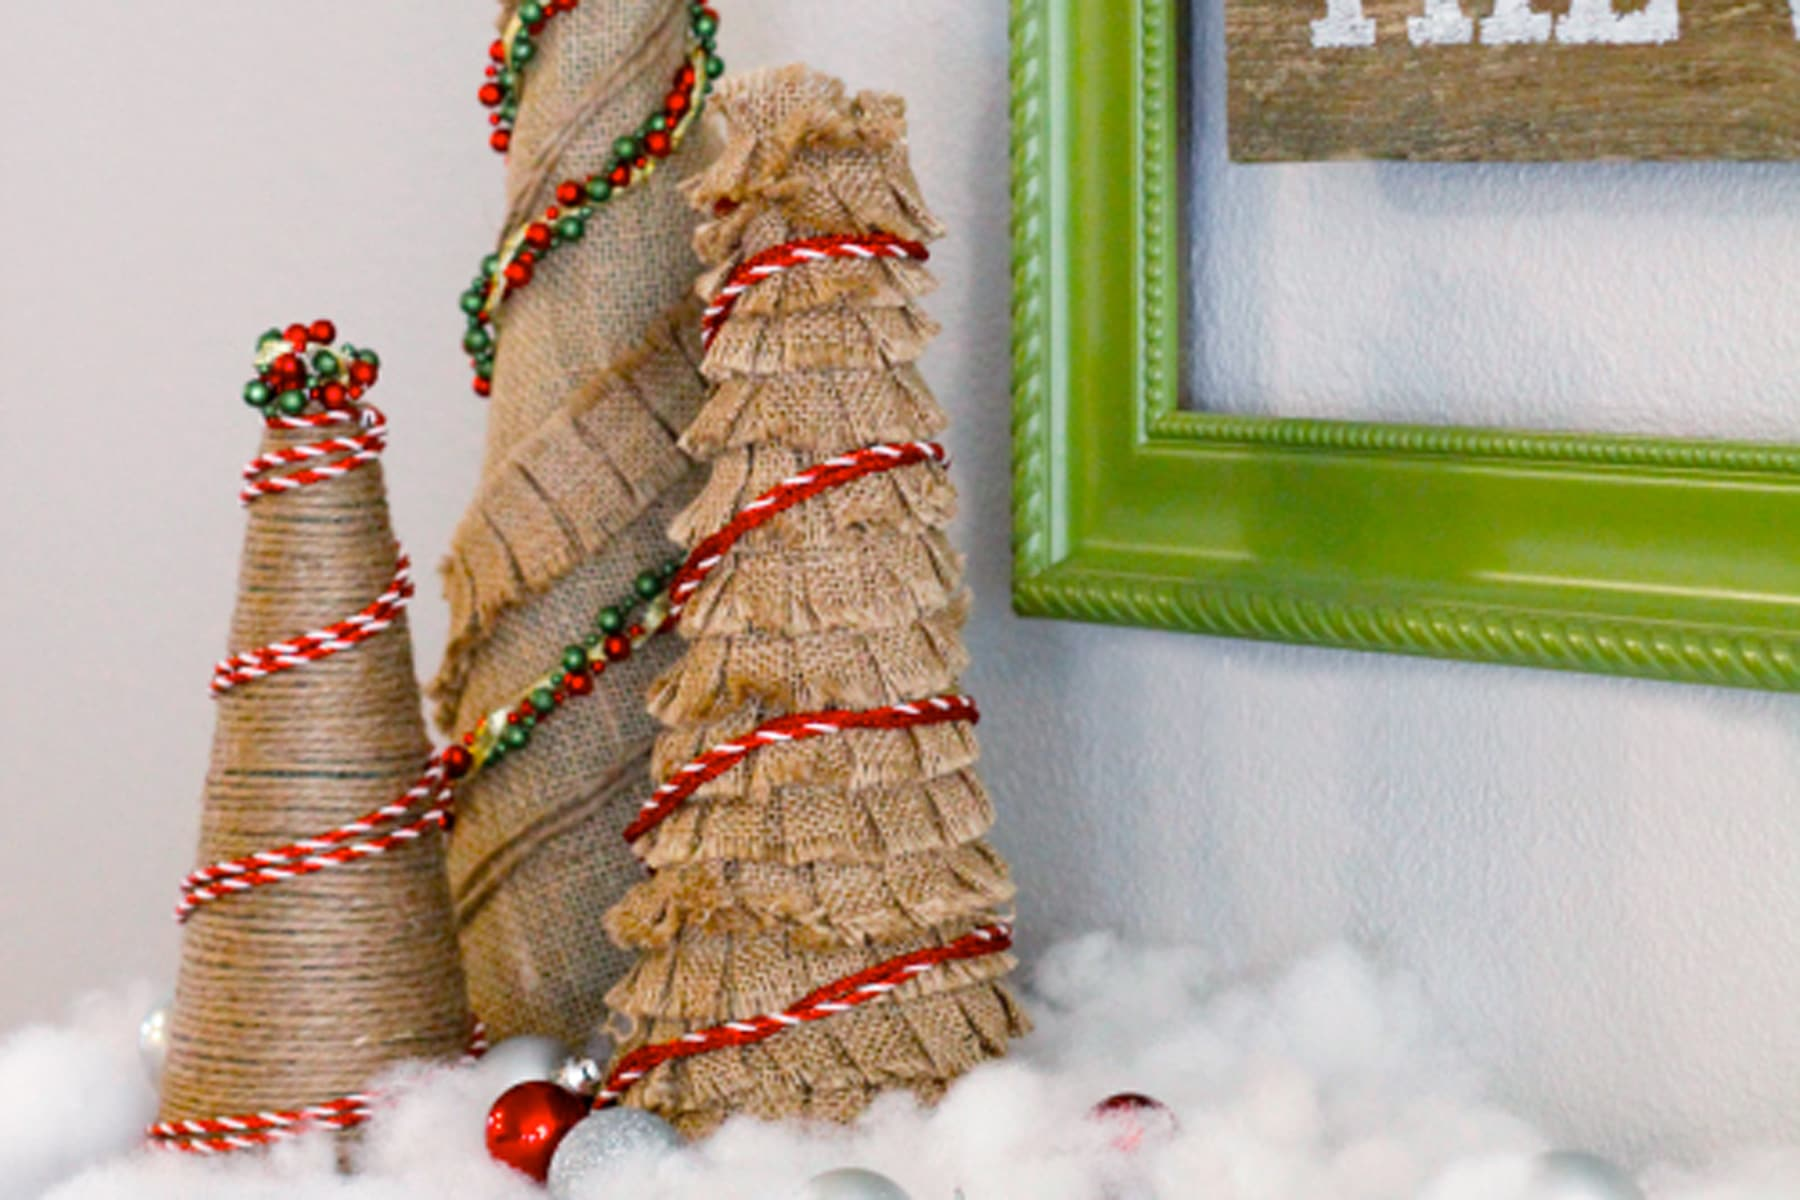 How To Make Burlap Christmas Trees